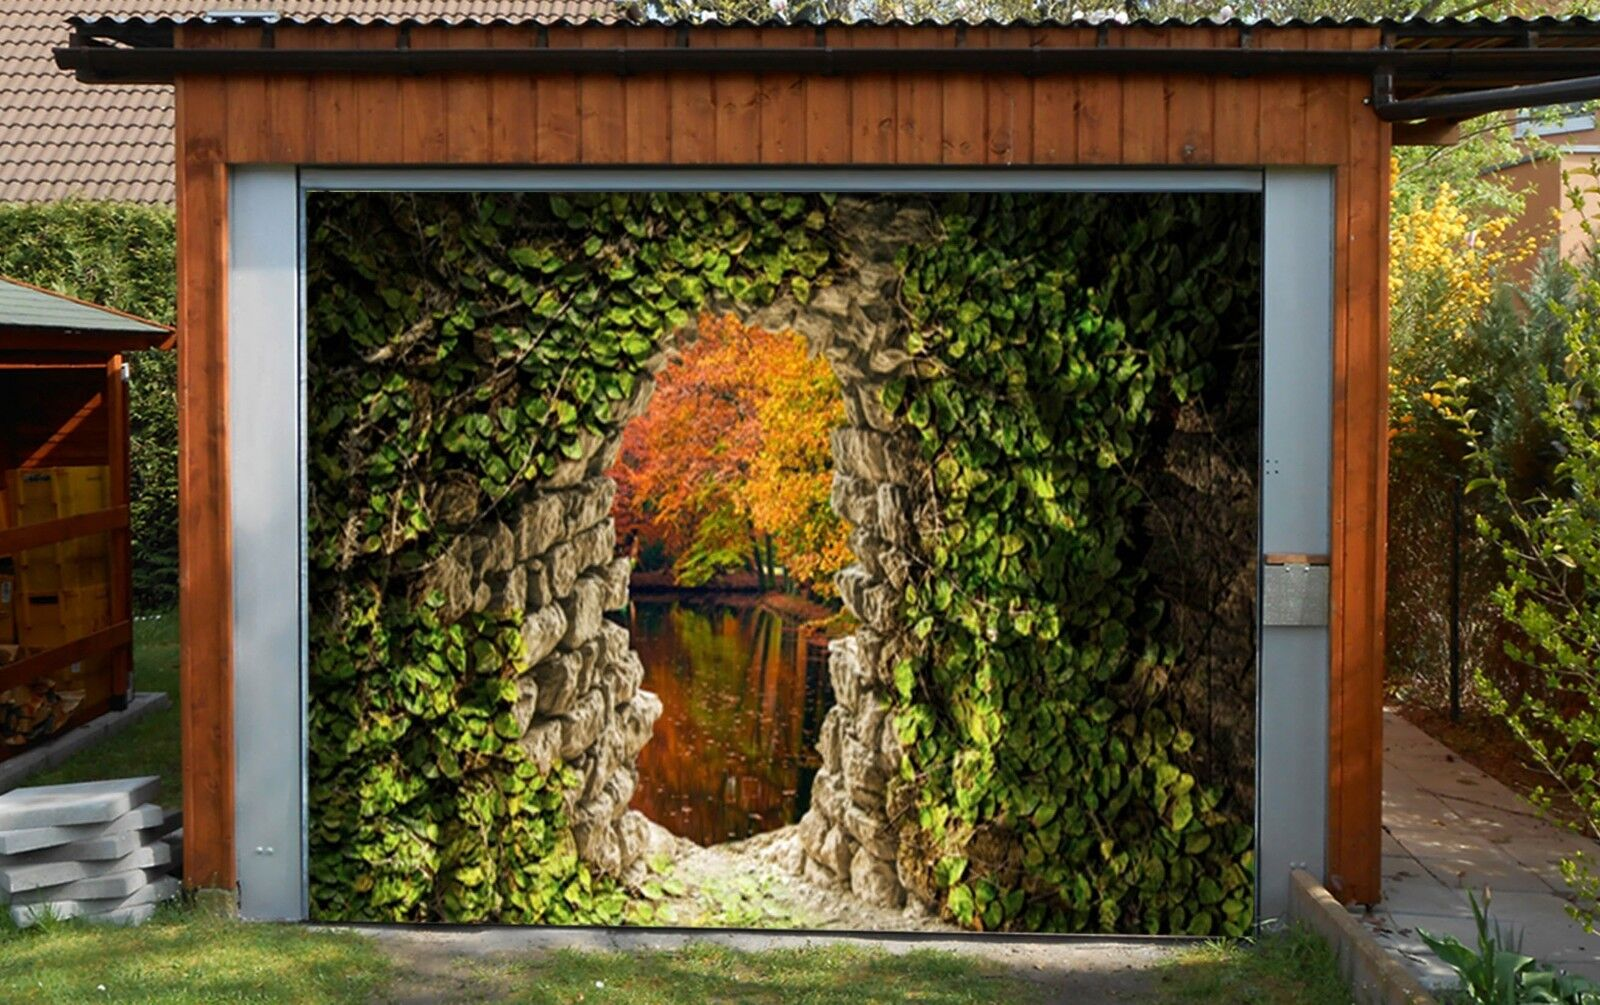 Pool Solarfolie 500 My Sol Guard Geobubble 3d Cave Garage Door Murals Wall Print Decal Wall Deco Aj